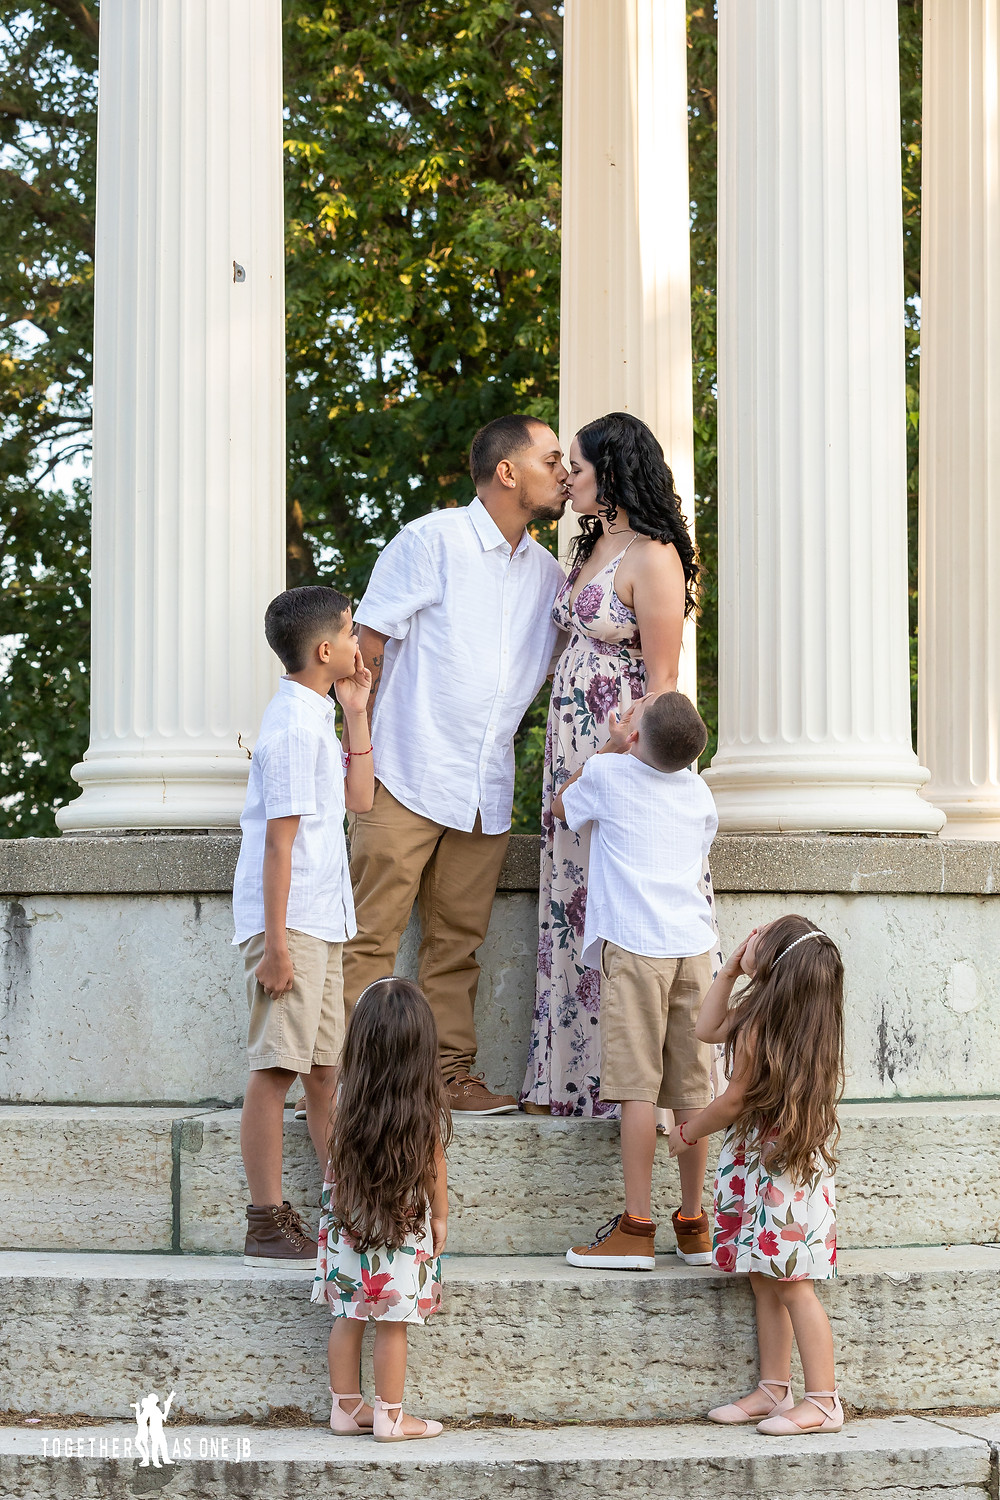 Family Portrait kids looking at mom and pop kissing under the pillars of Mount Snow, Cincinnati Ohio.  Photo taken by Together As One JB to capture the moment of all the kids looking at the parents kissing during their engagement session.